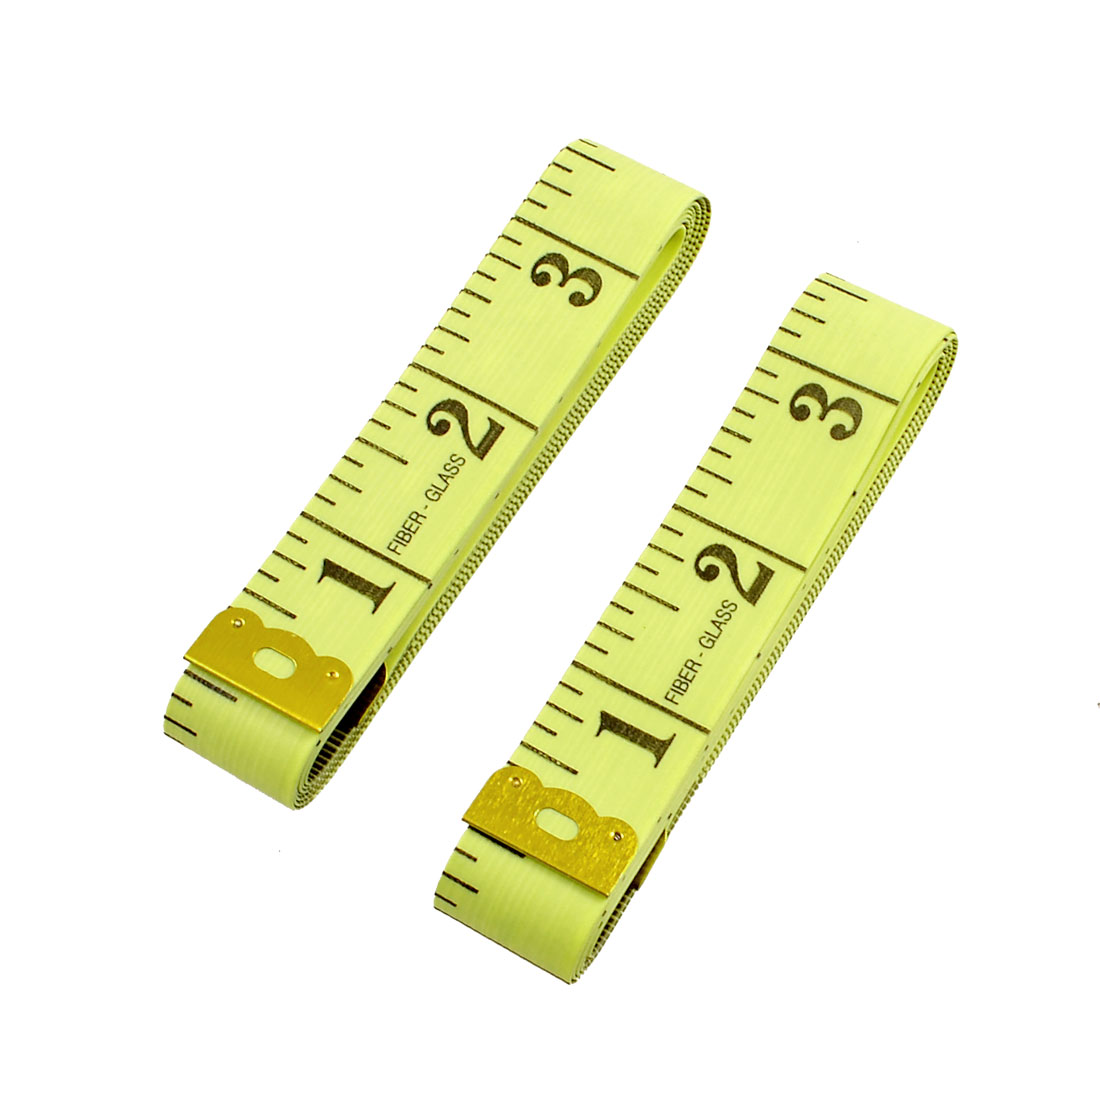 "2 Pcs 60"" 150cm Yellow Soft Fiber Glass Seamstress Sewing Cloth Ruler"